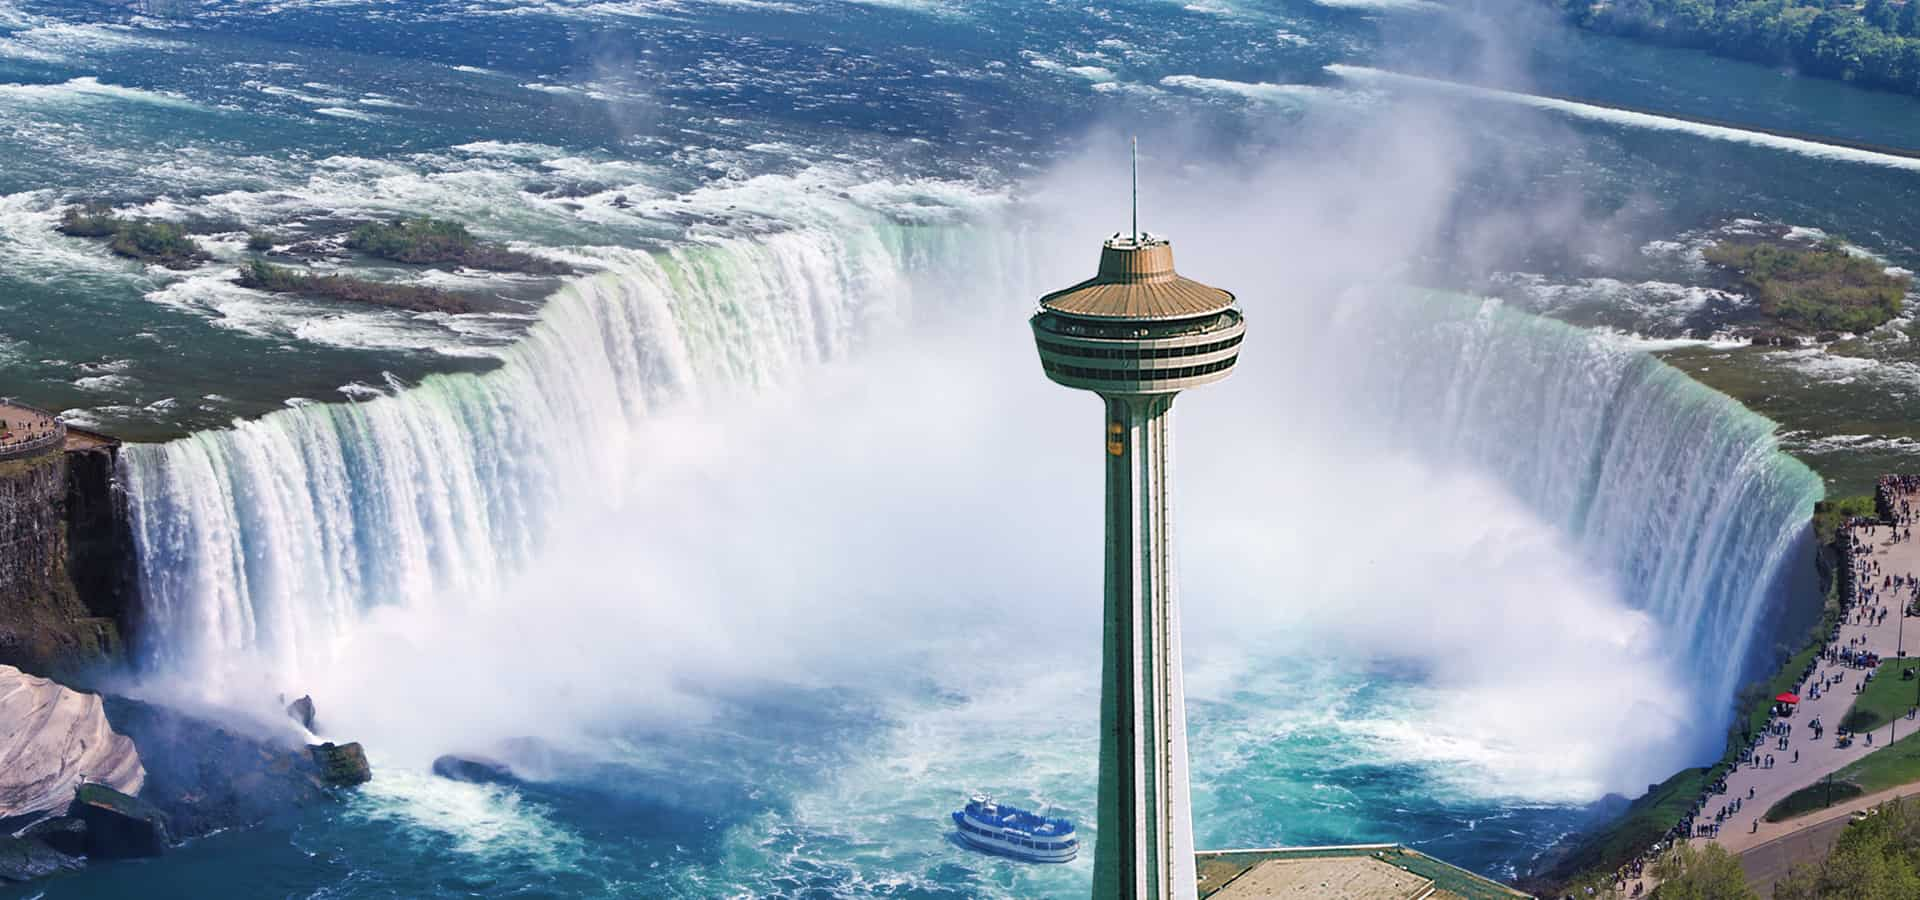 Discount coupons for niagara falls attractions